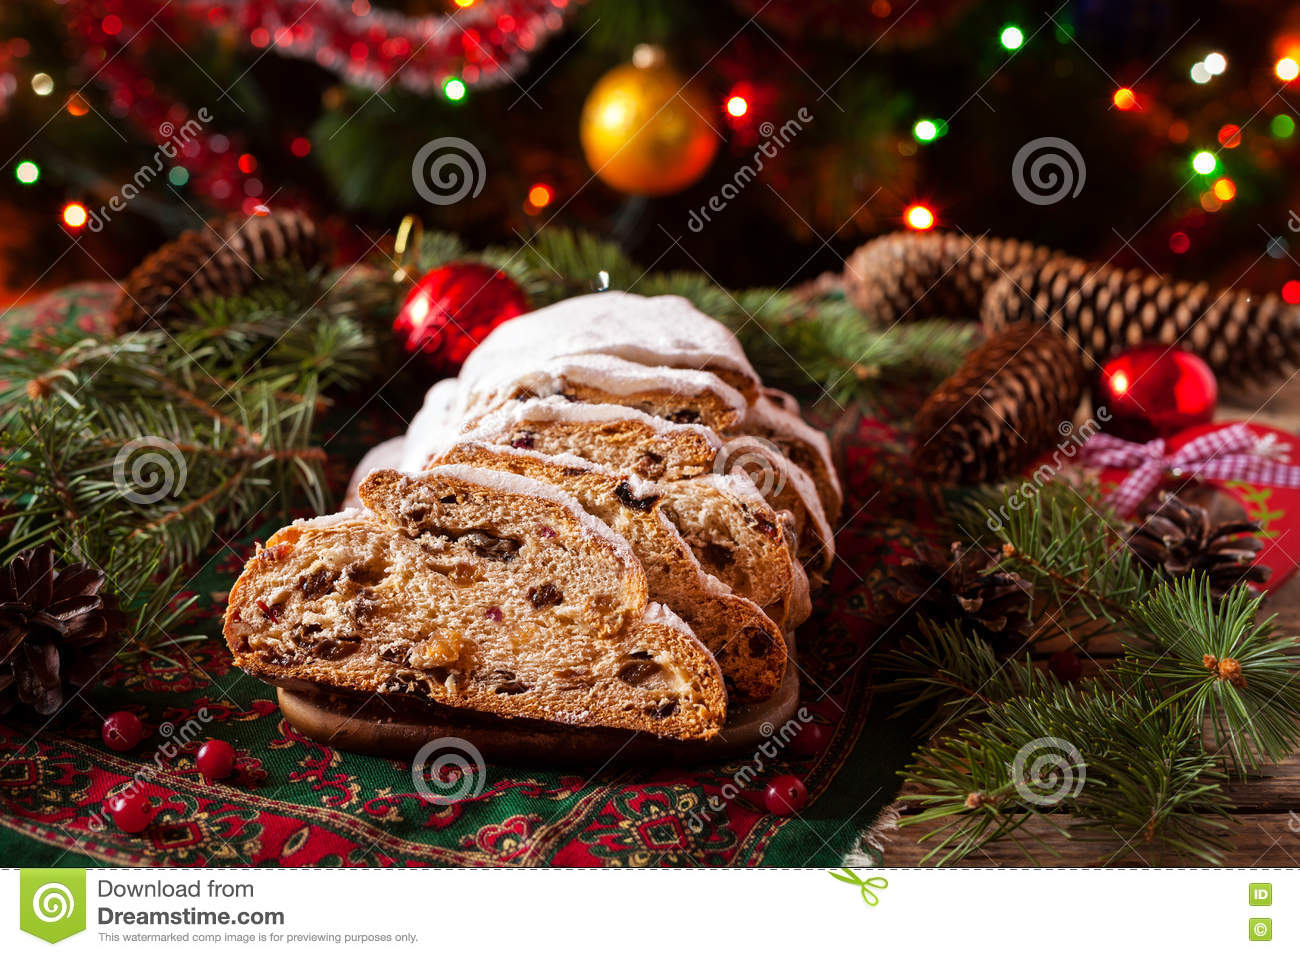 Traditional german christmas decorations - Traditional Dresdner German Christmas Cake Stollen With Raising Berries And Nuts Celebration Decorations